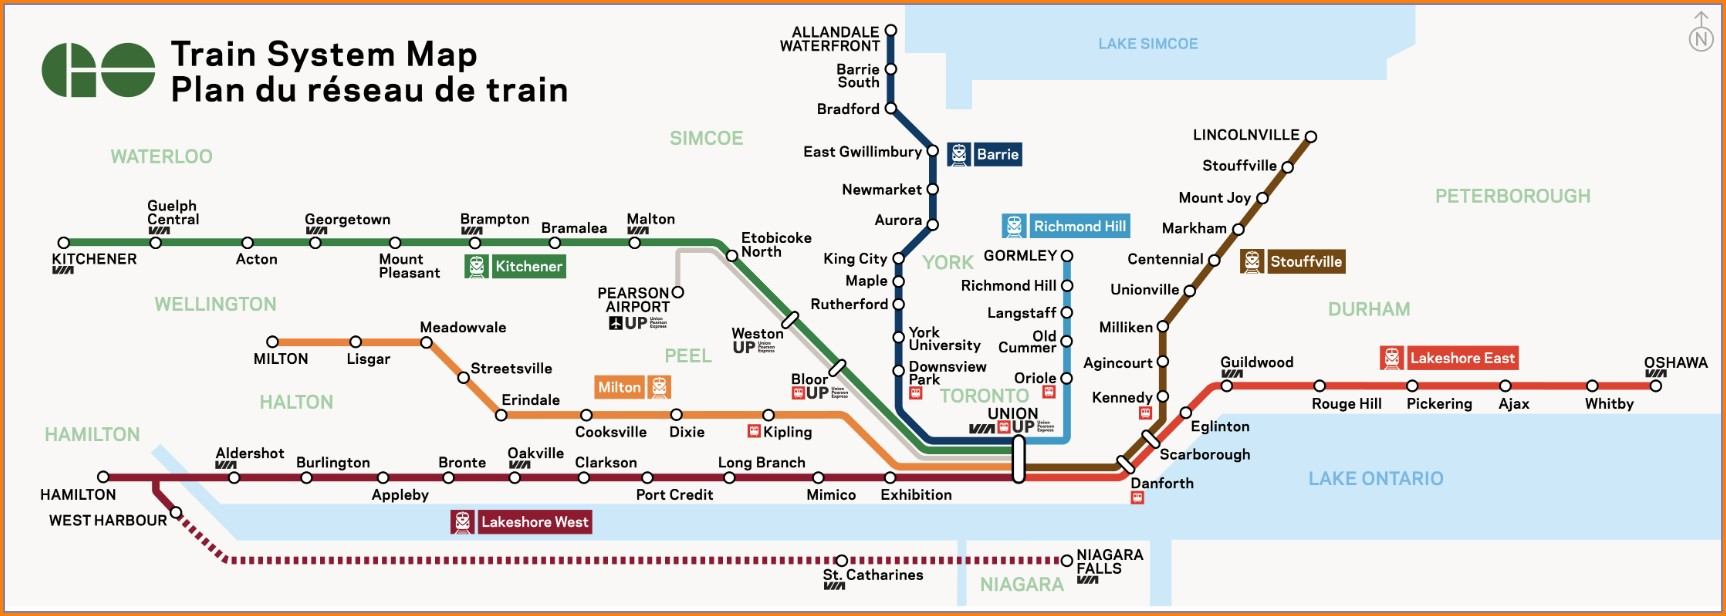 Union Station Go Train Platform Map